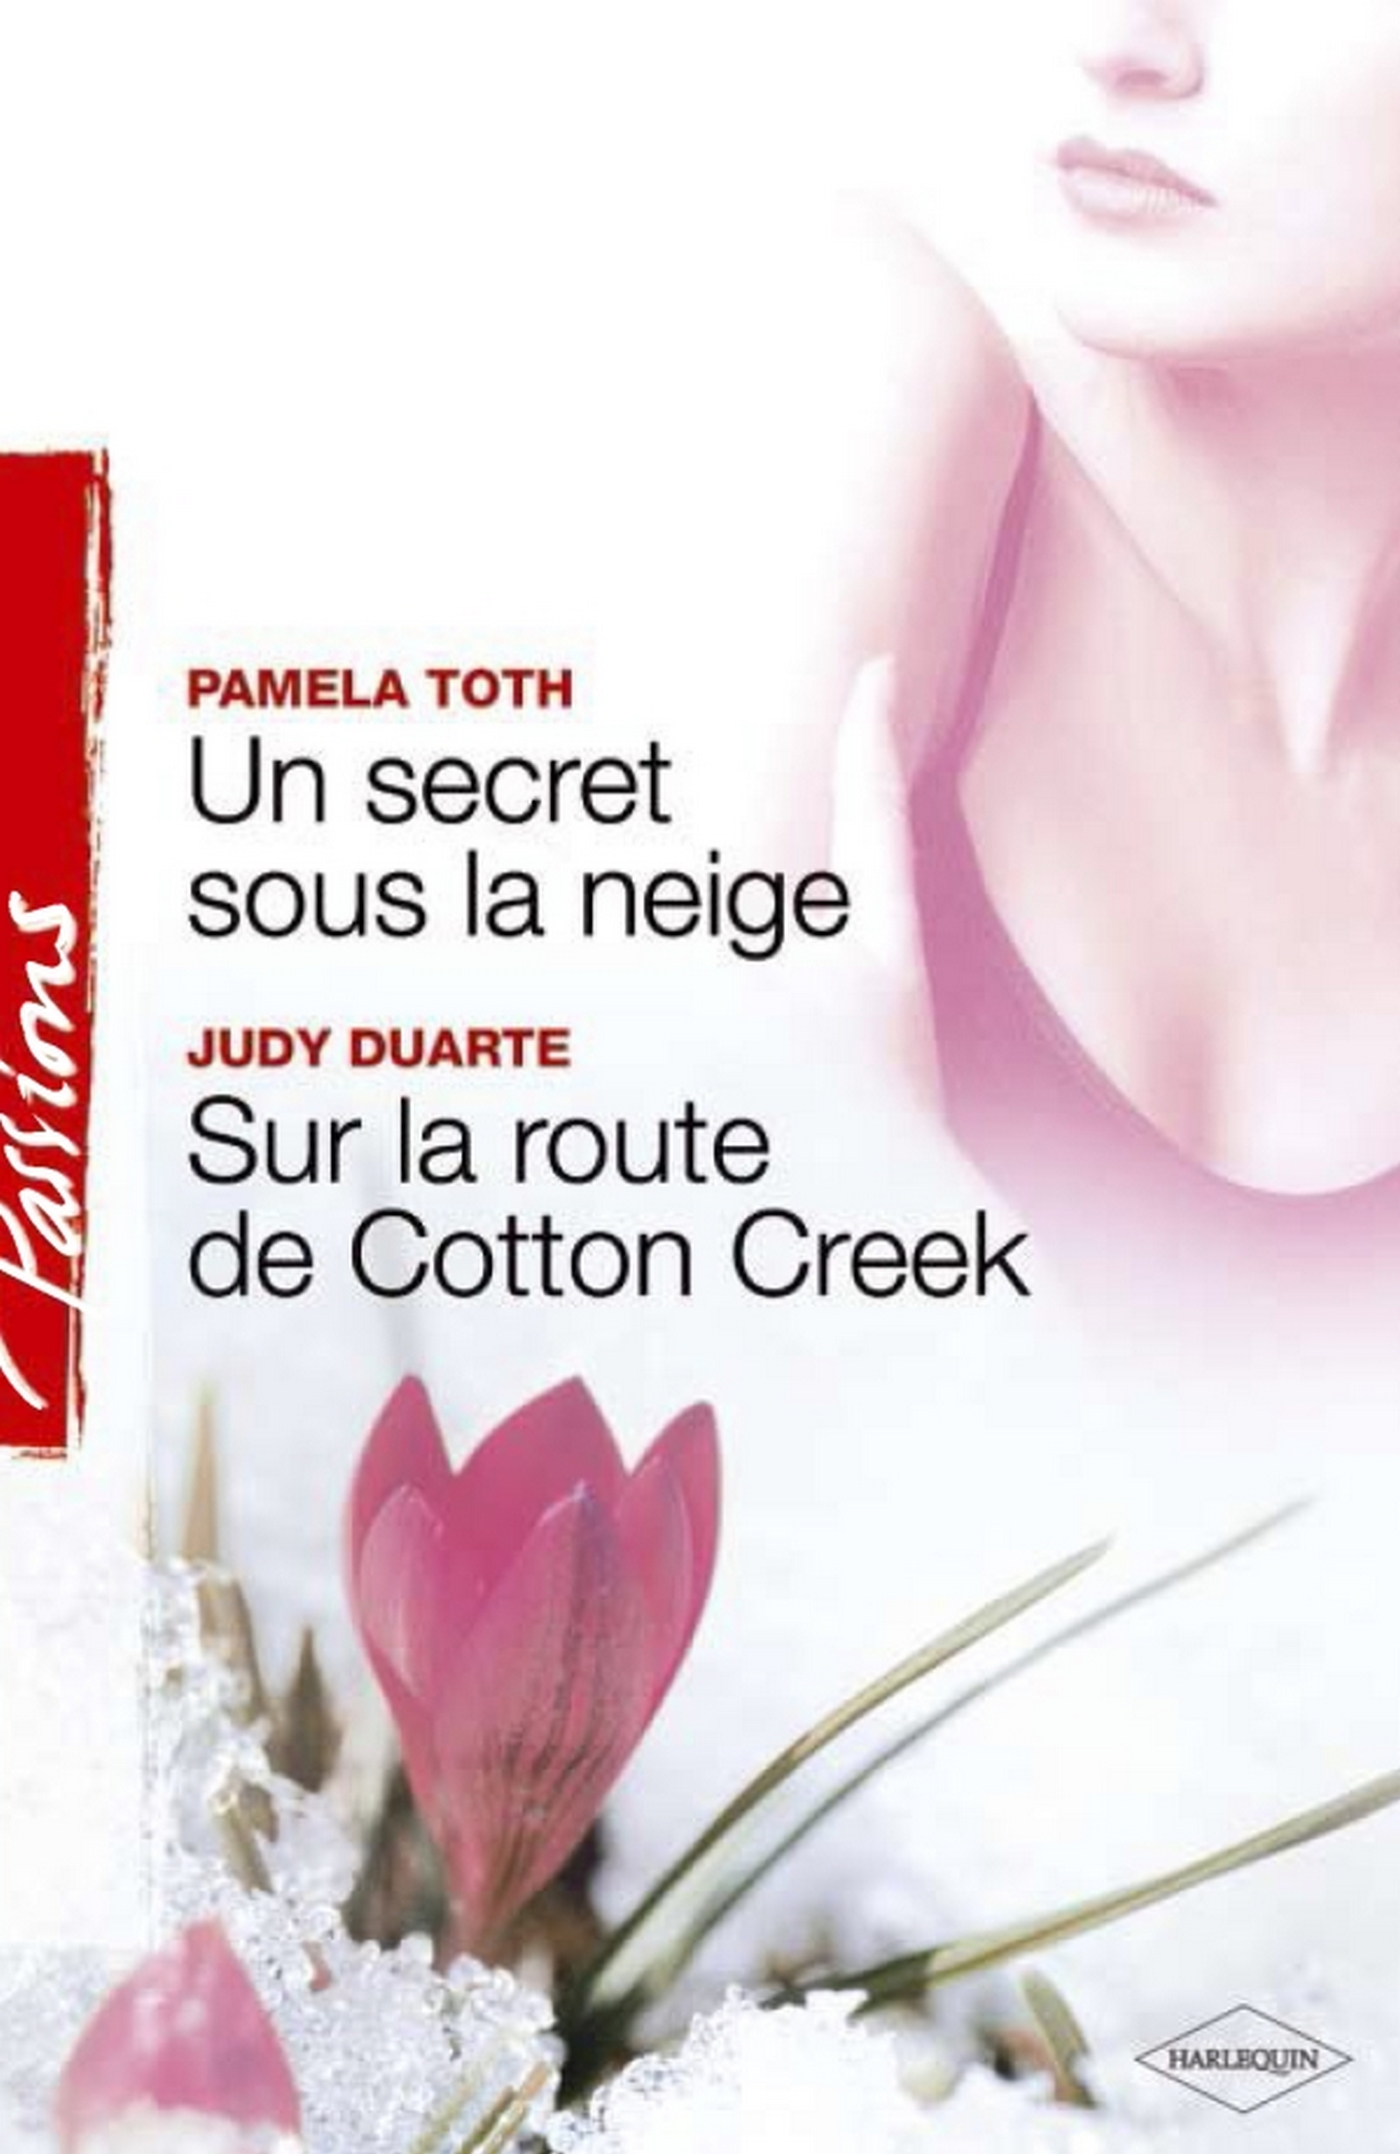 Un secret sous la neige - Sur la route de Cotton Creek (Harlequin Passions)